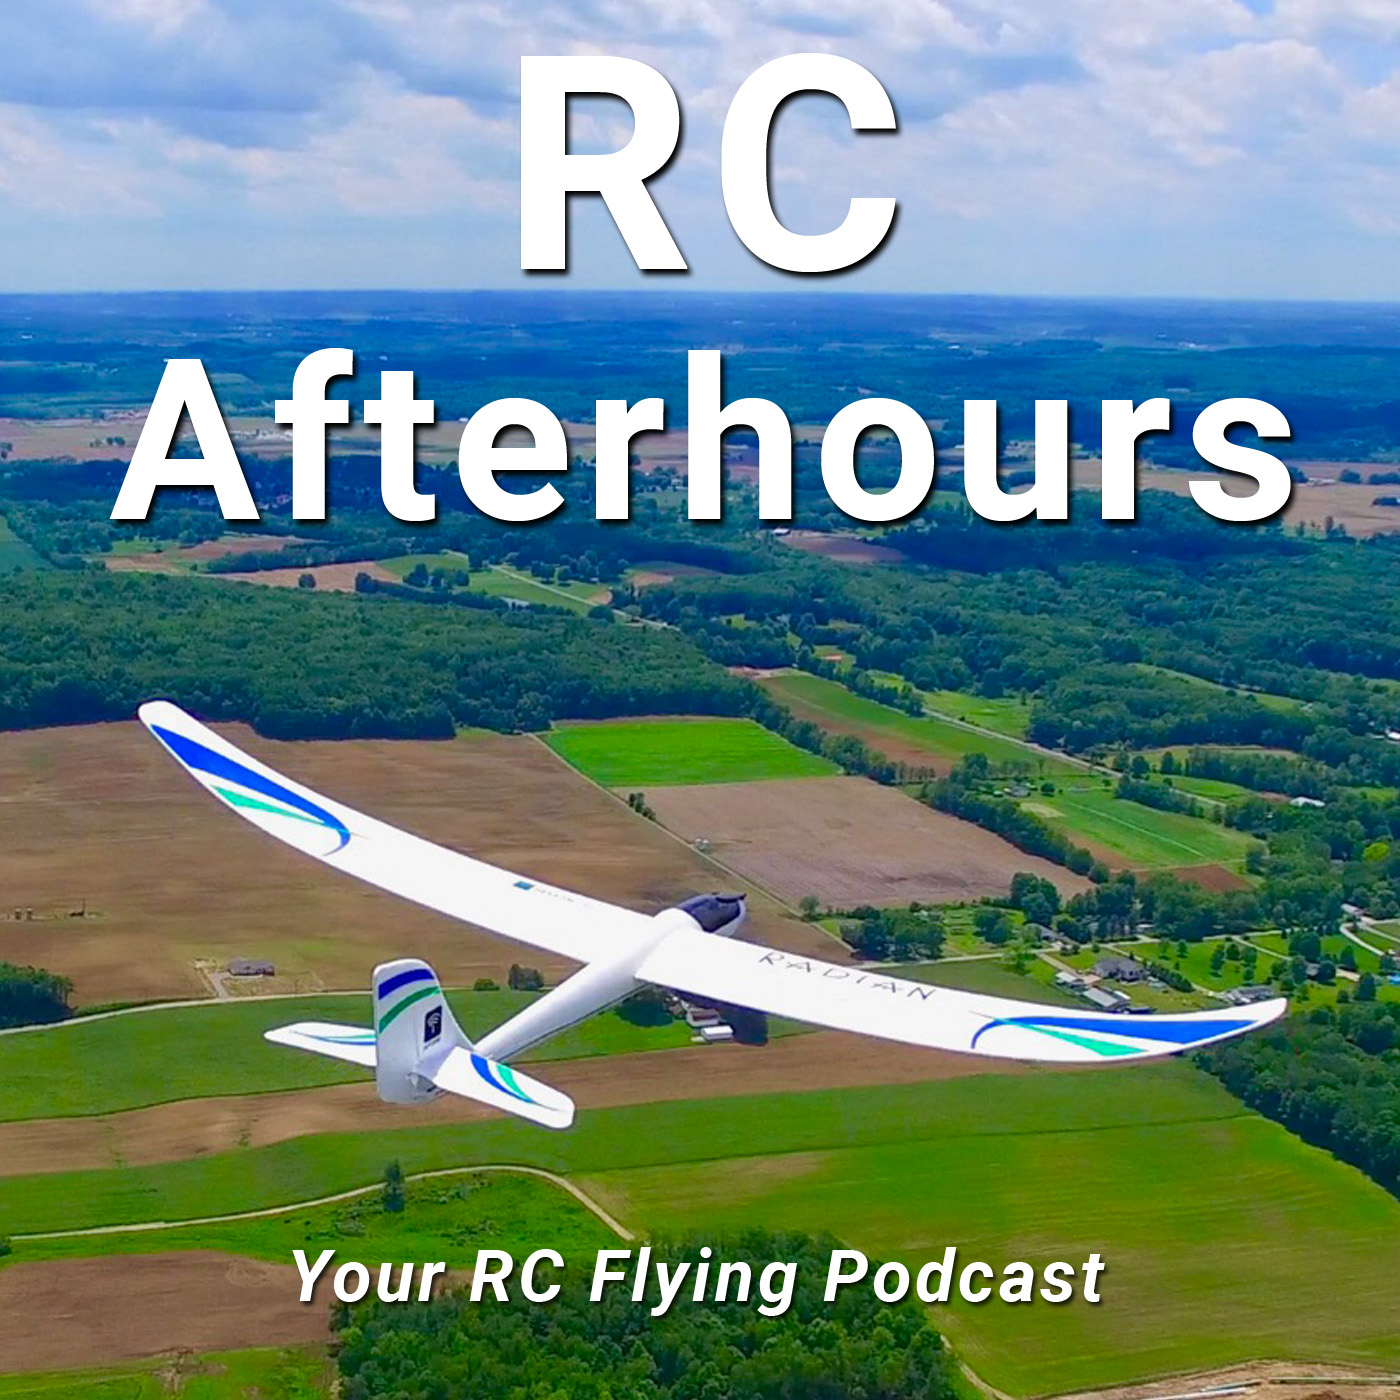 RC Afterhours